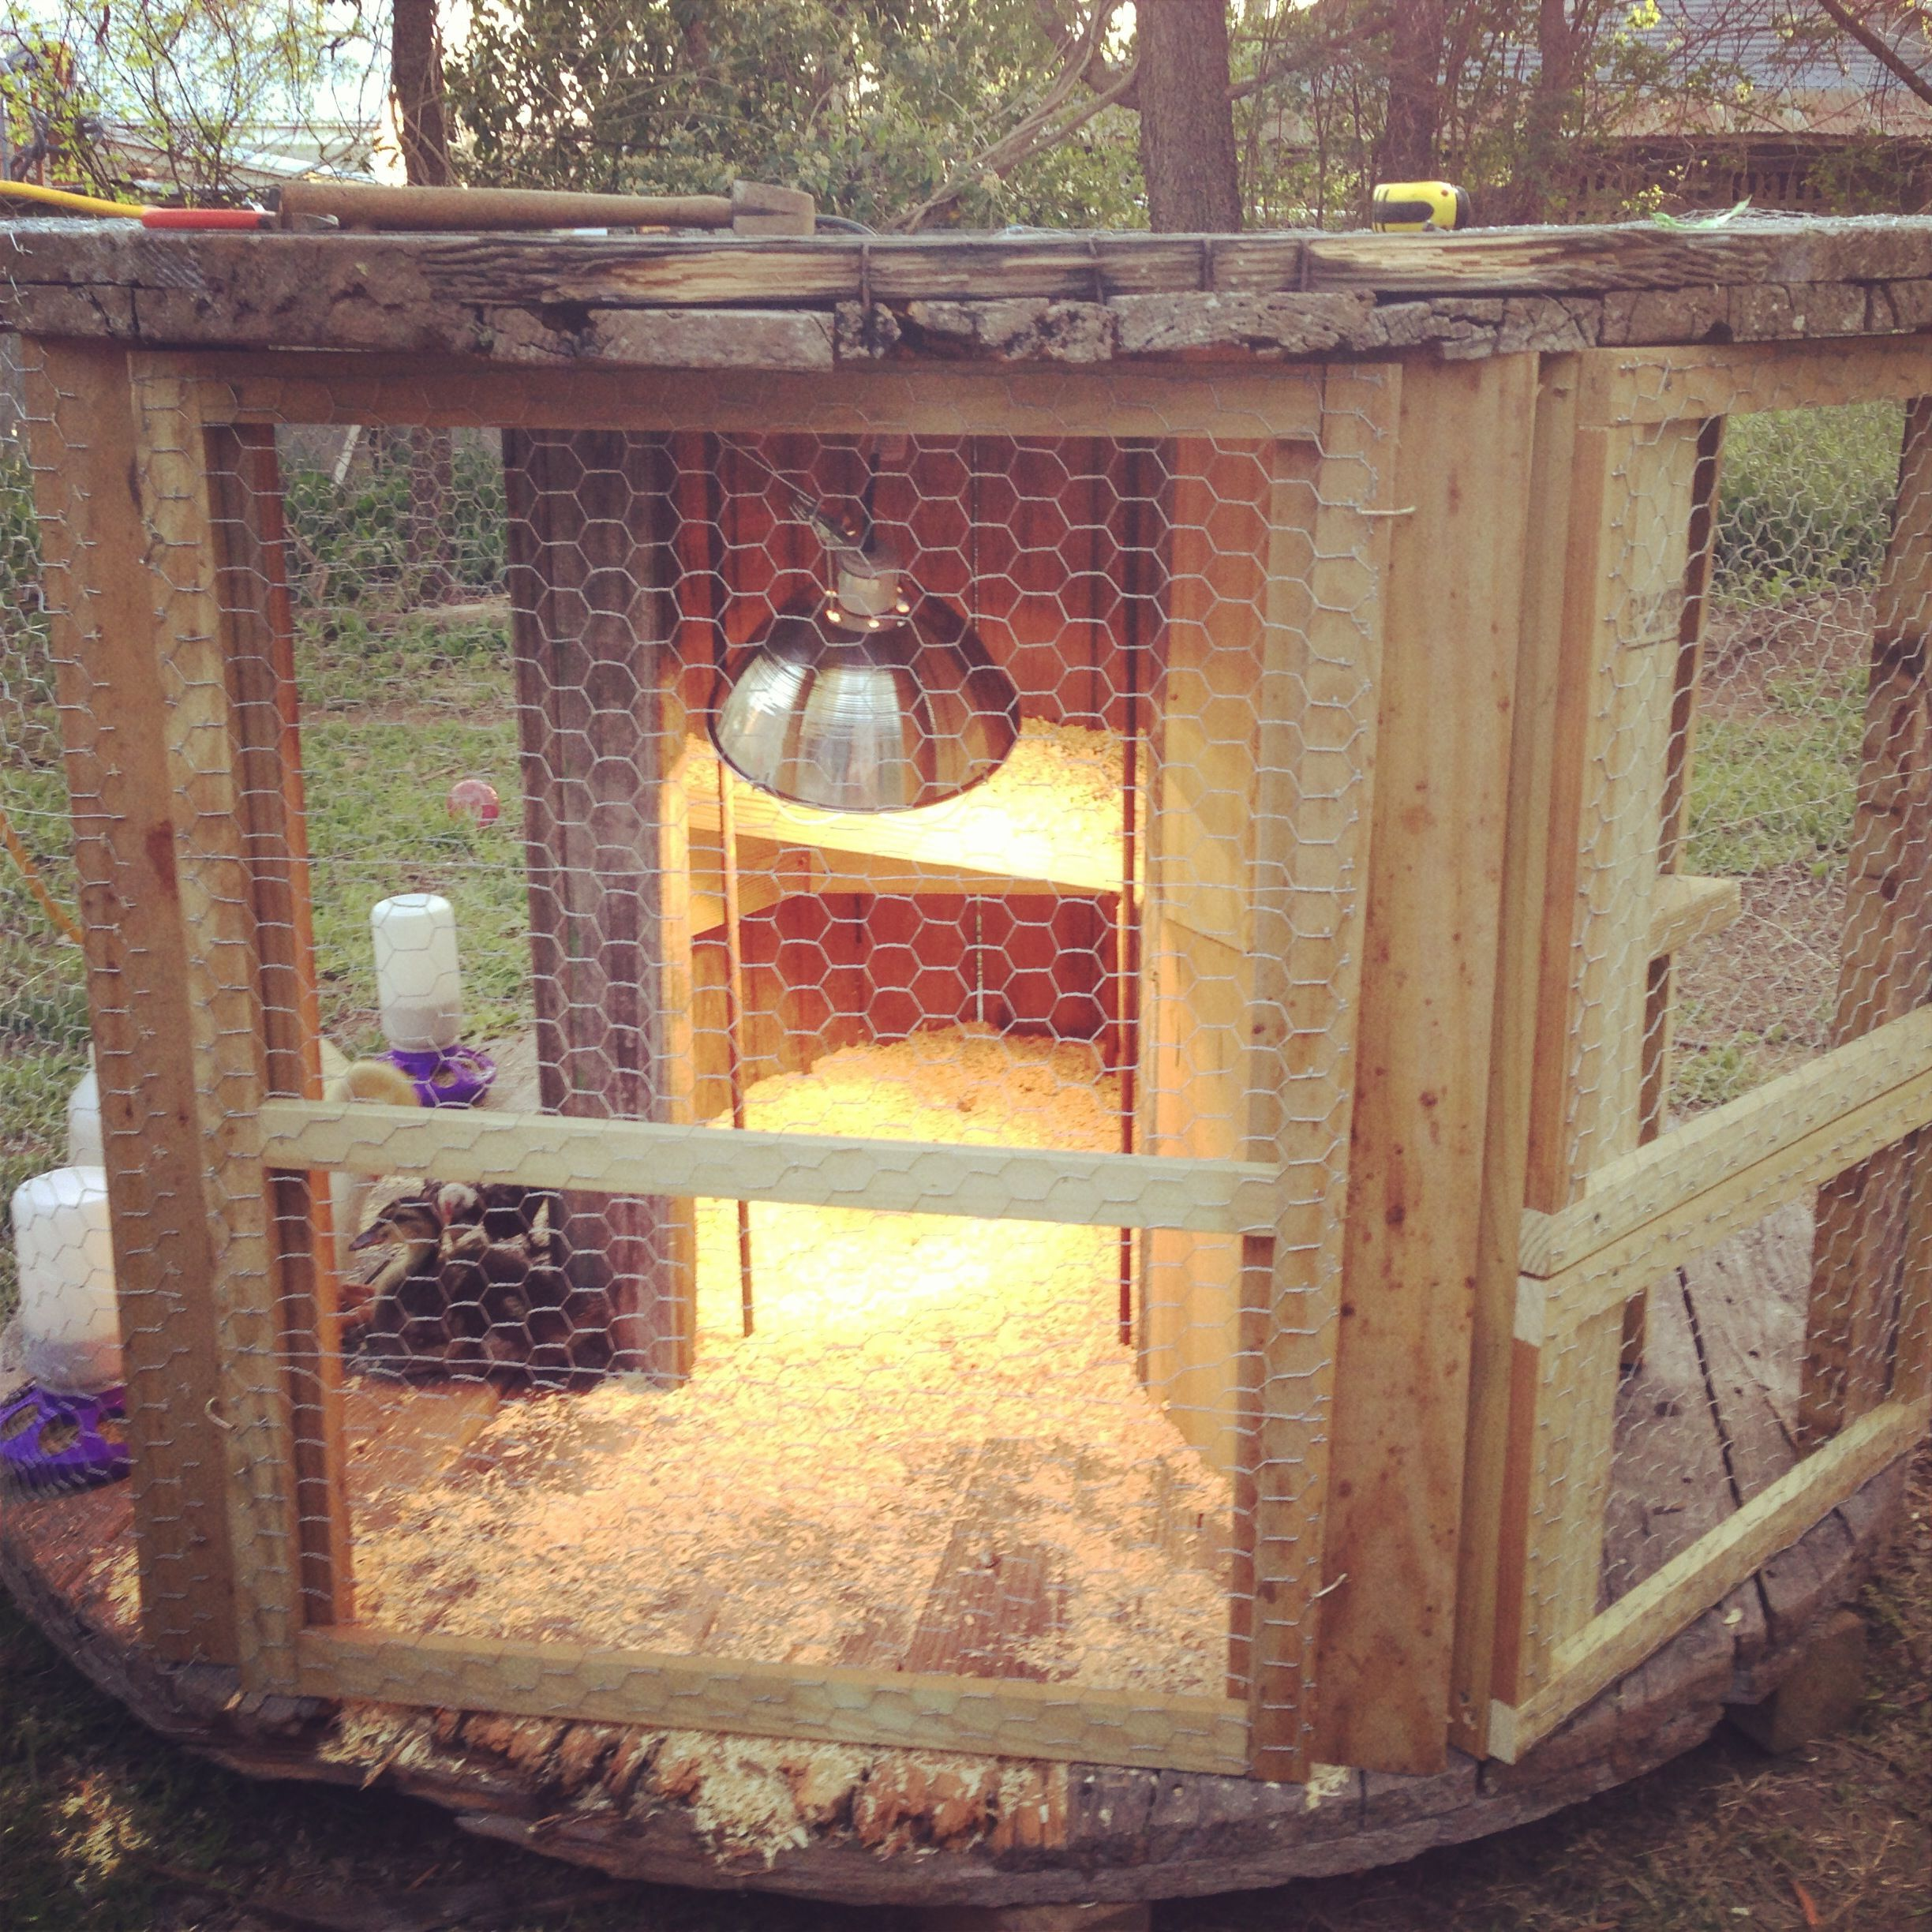 The chicken coop I built today out of an old electrical spool